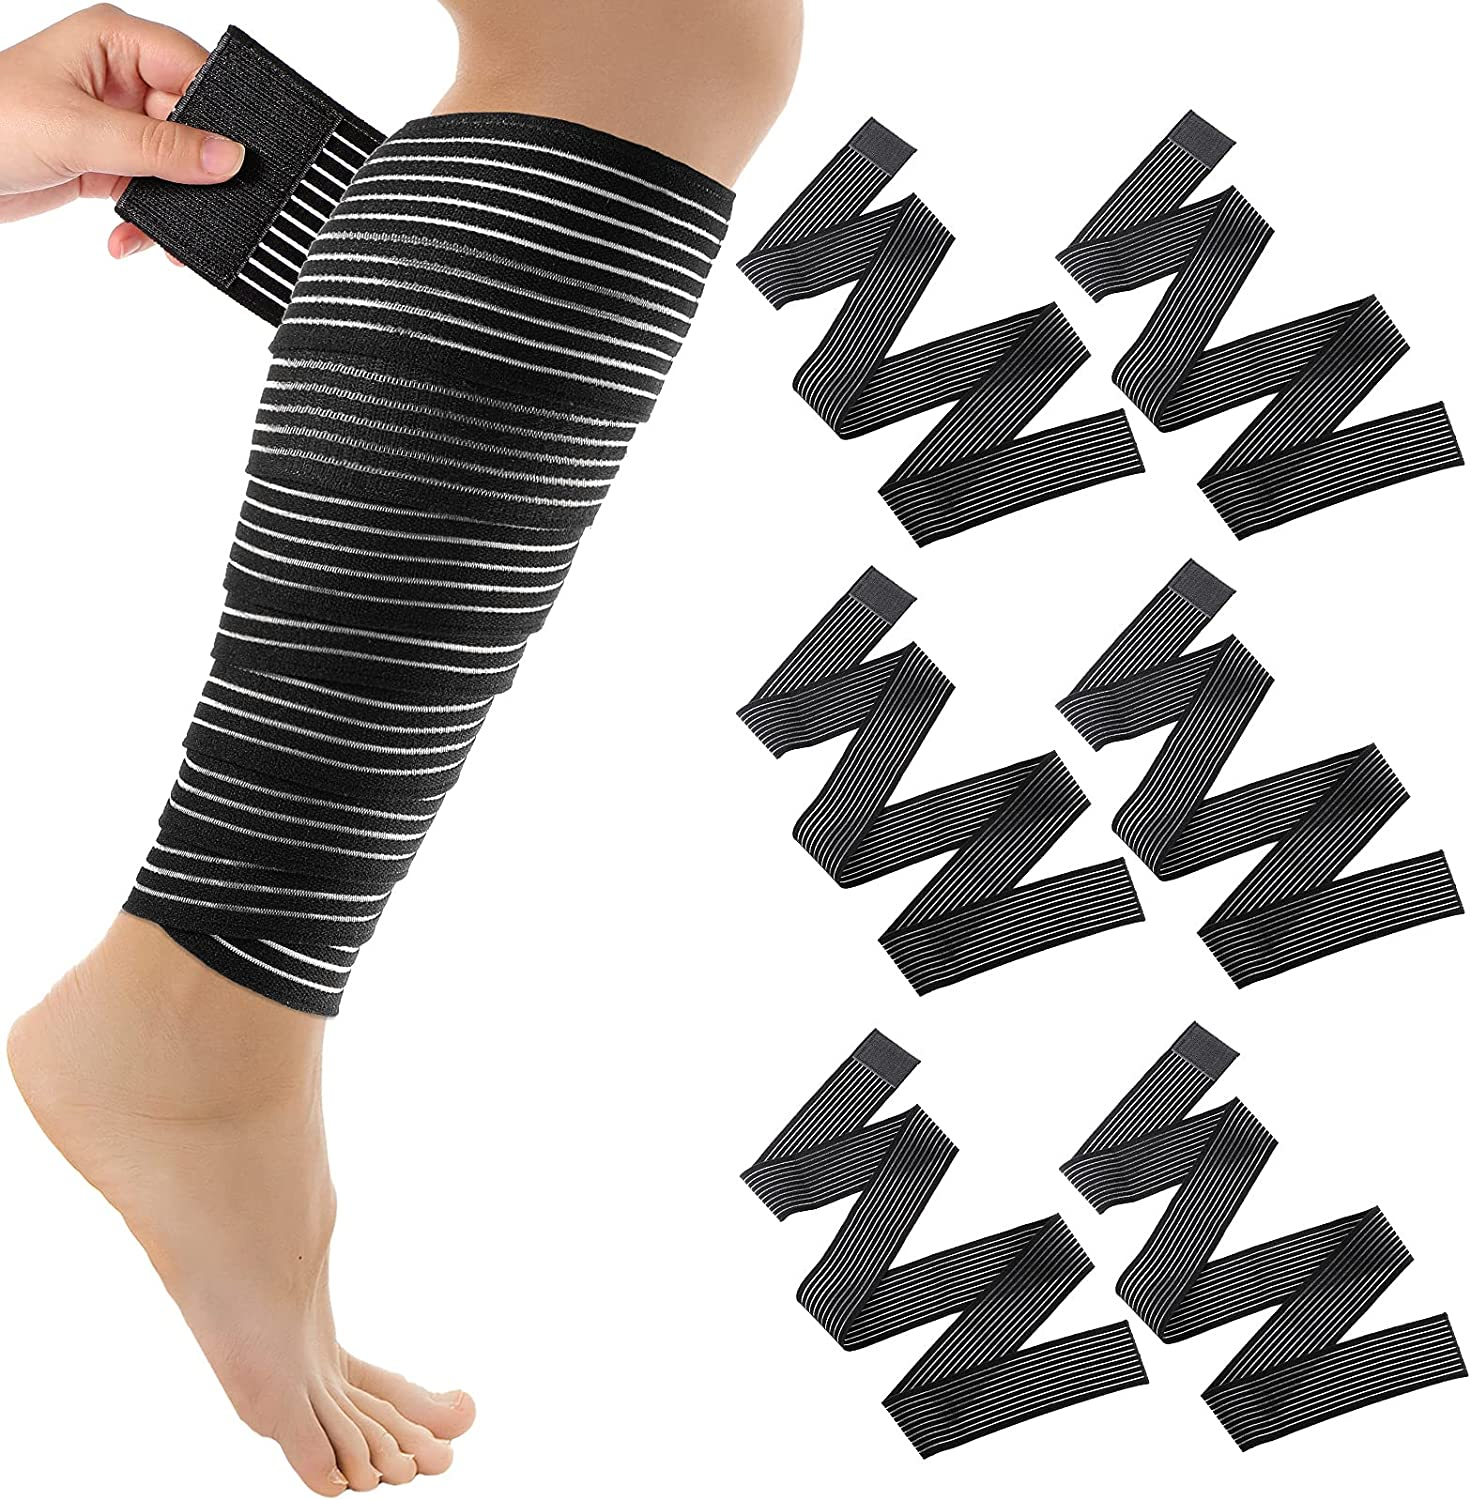 Elastic Calf Compression Bandage Leg Compression Sleeve for Men and Women, Compression Wraps Lower Legs for Stabilising Ligament, Joint Pain, Sport, Adjustable Black (6 Pieces,180 cm) : Health & Household